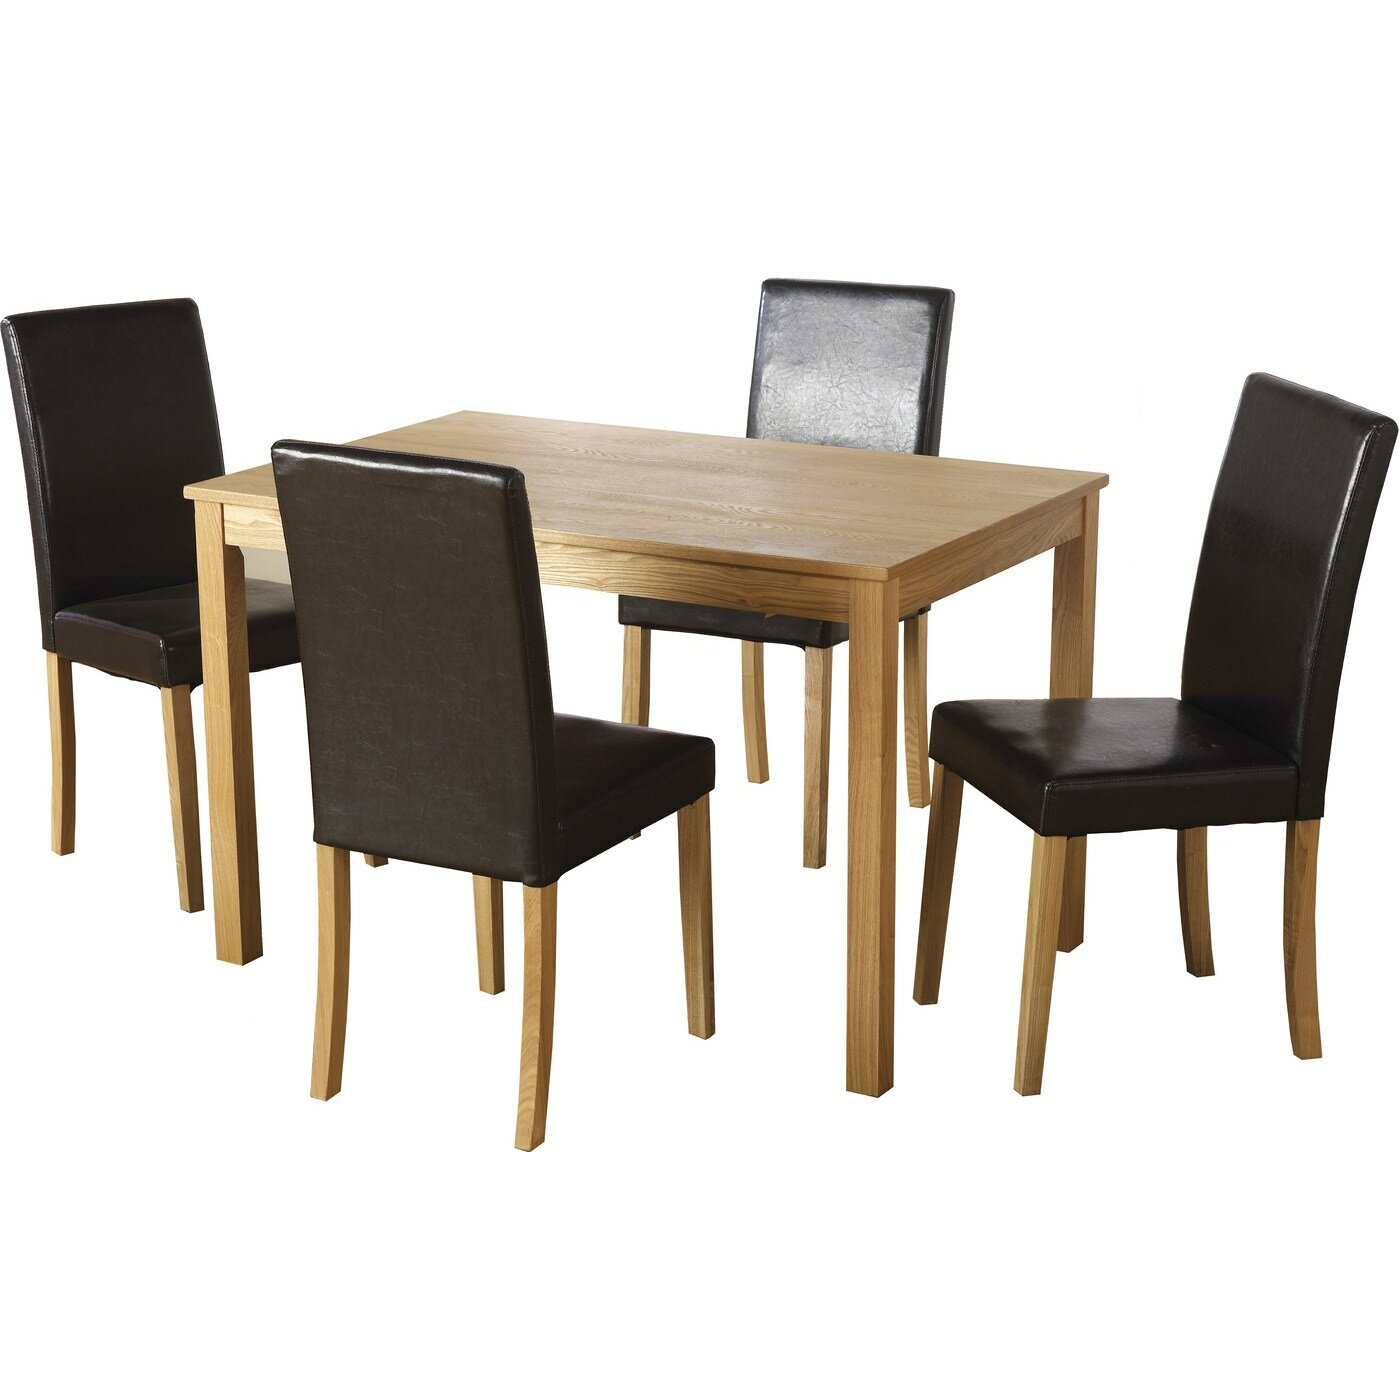 Anns dining table and 4 chairs wayfair uk for Dining table and chairs